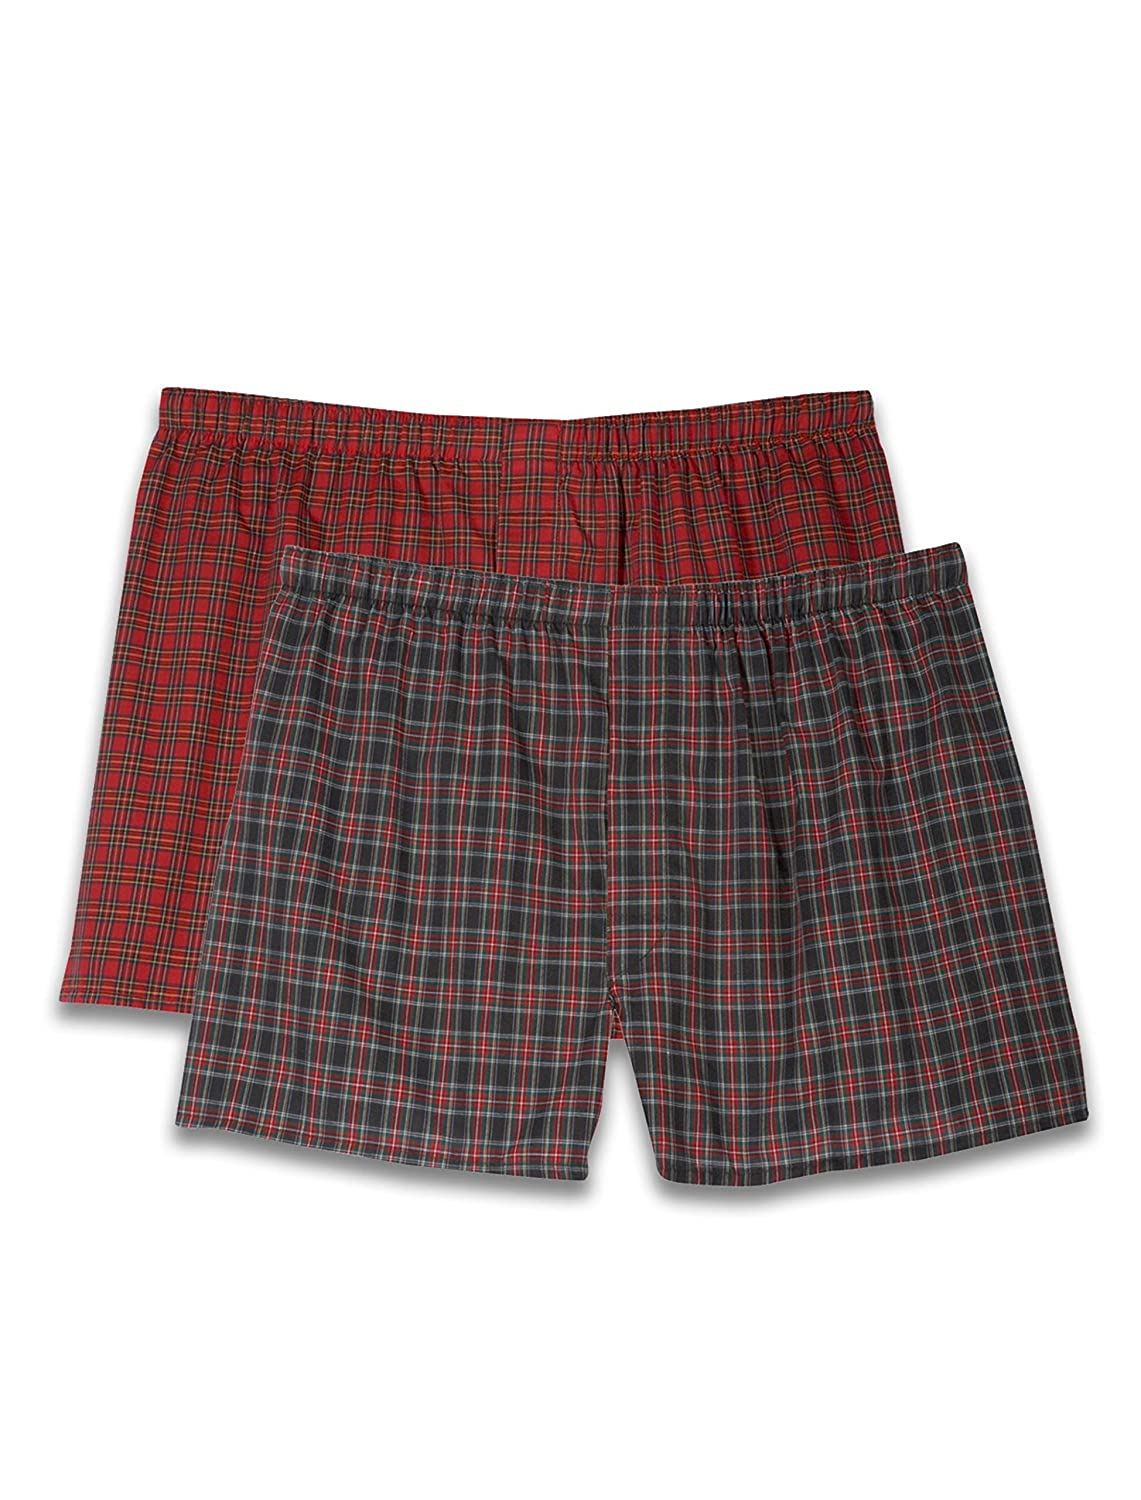 Harbor Bay by DXL Big and Tall Red Plaid Boxers